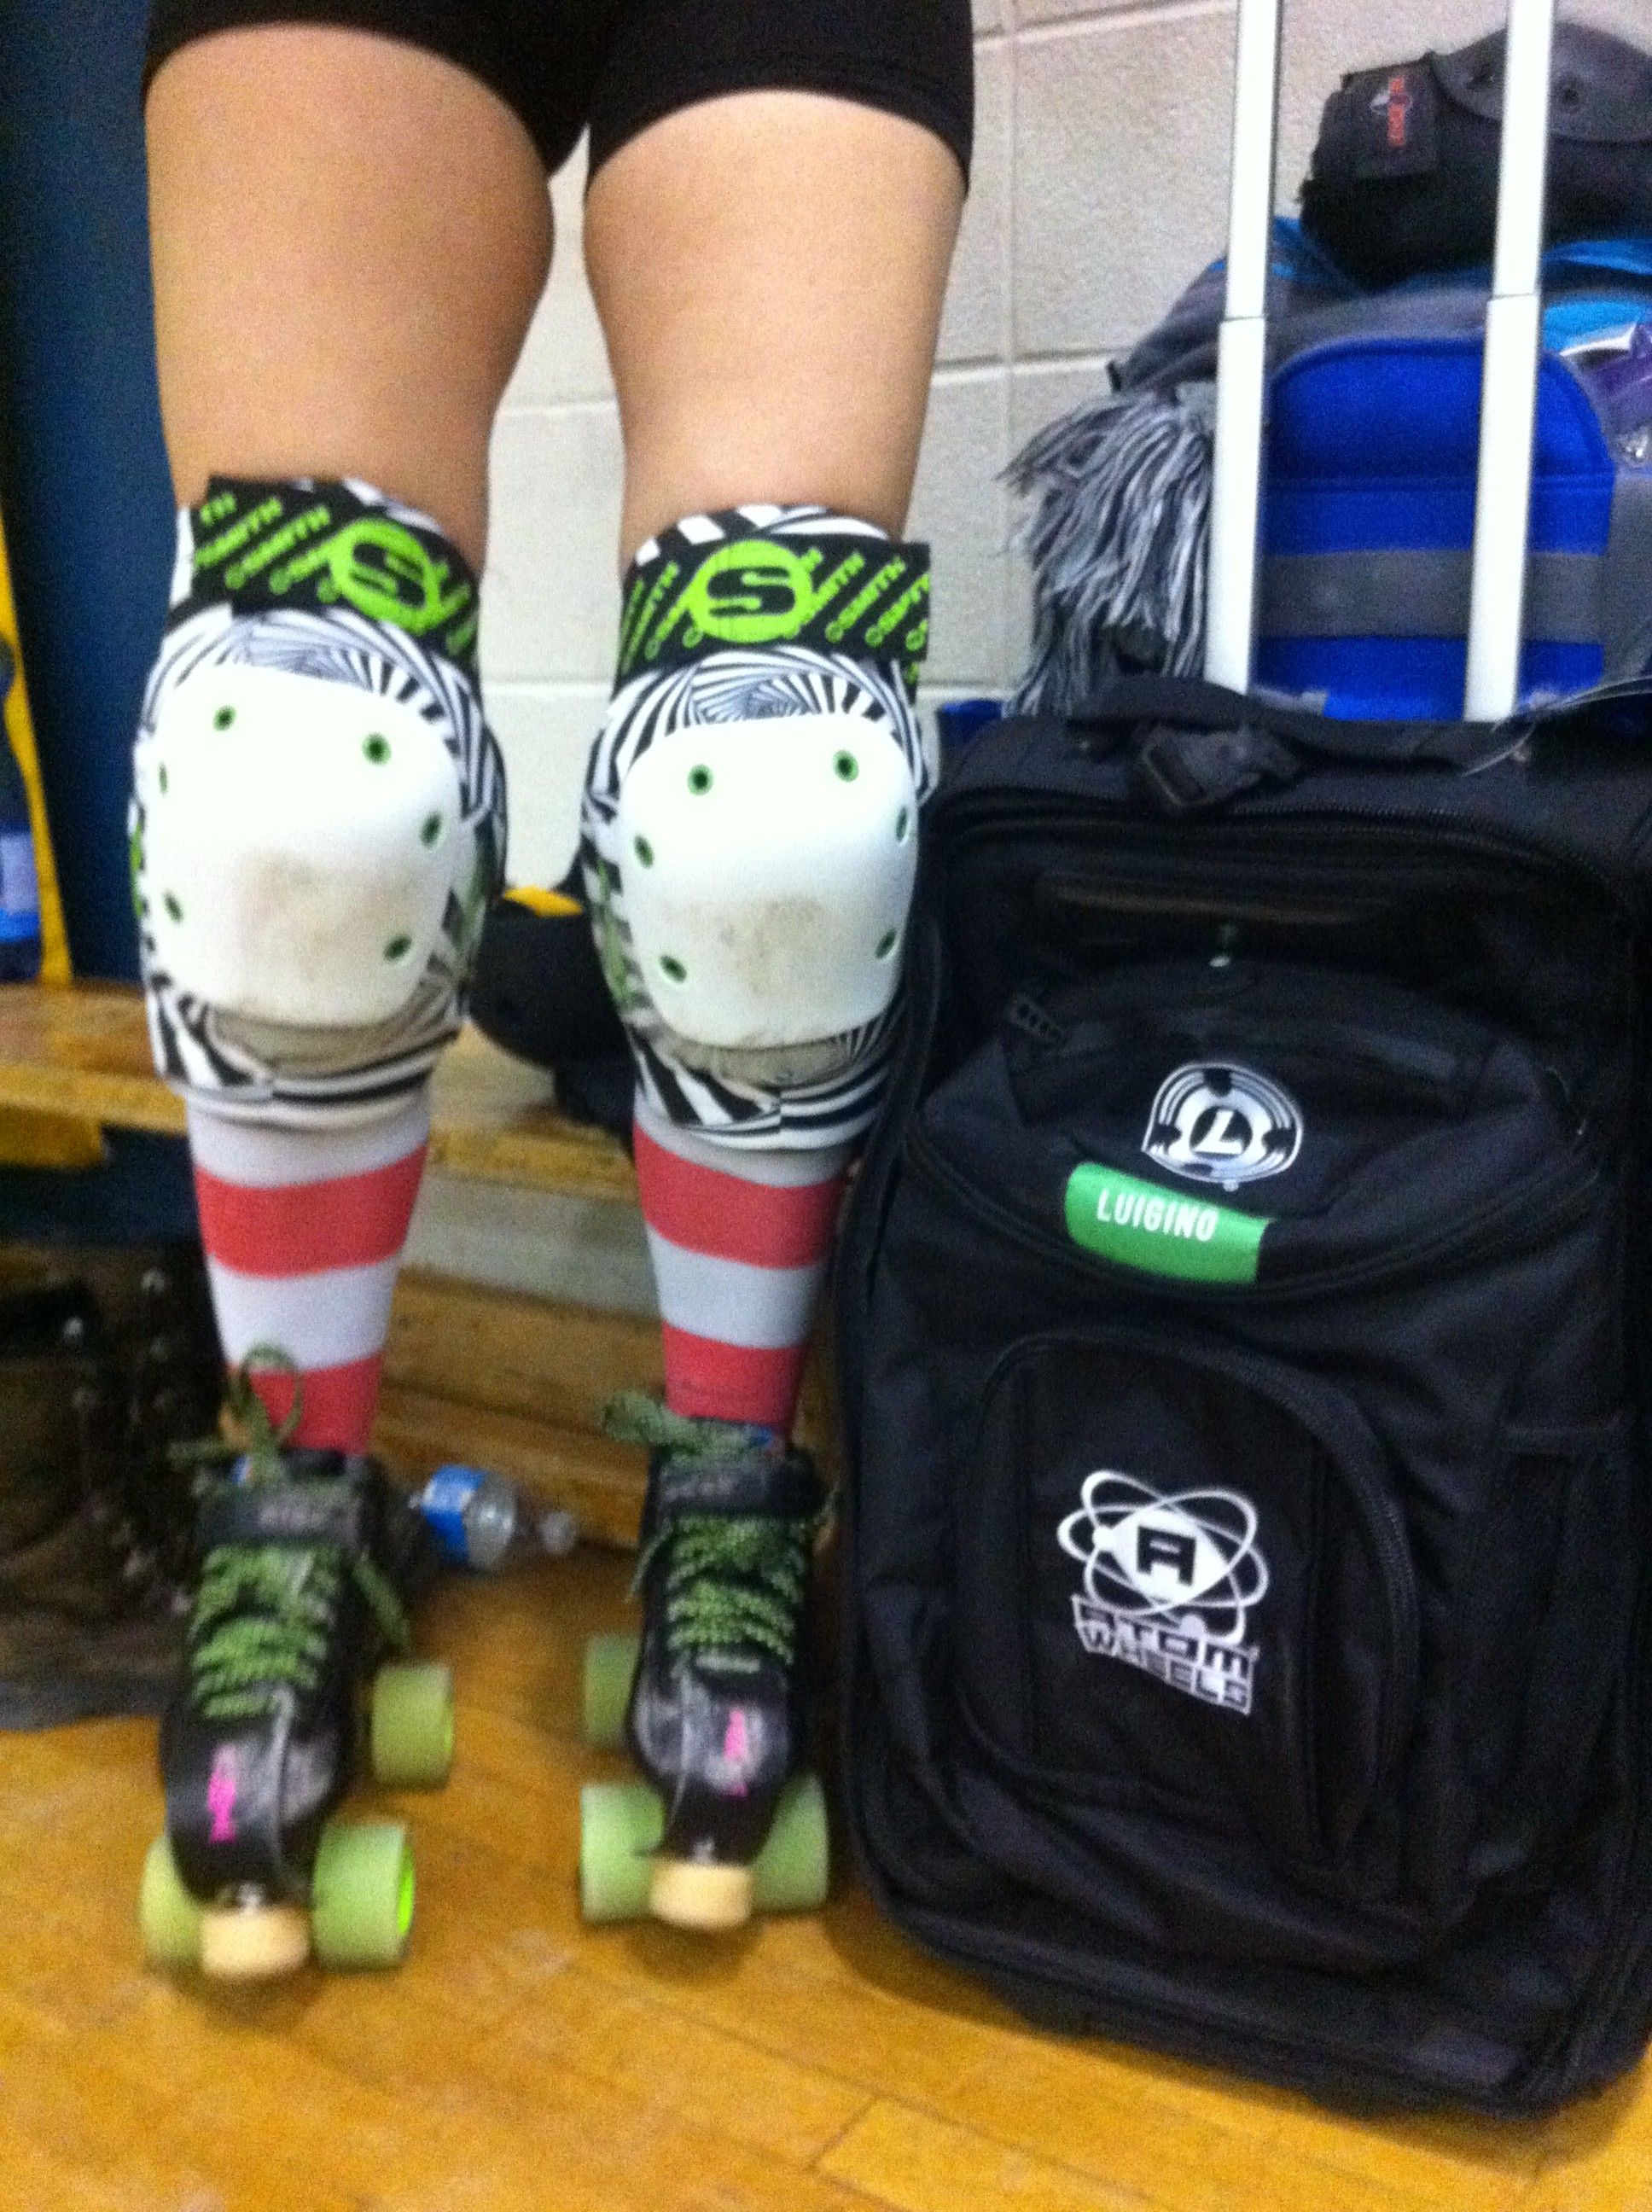 Knee pads & bag